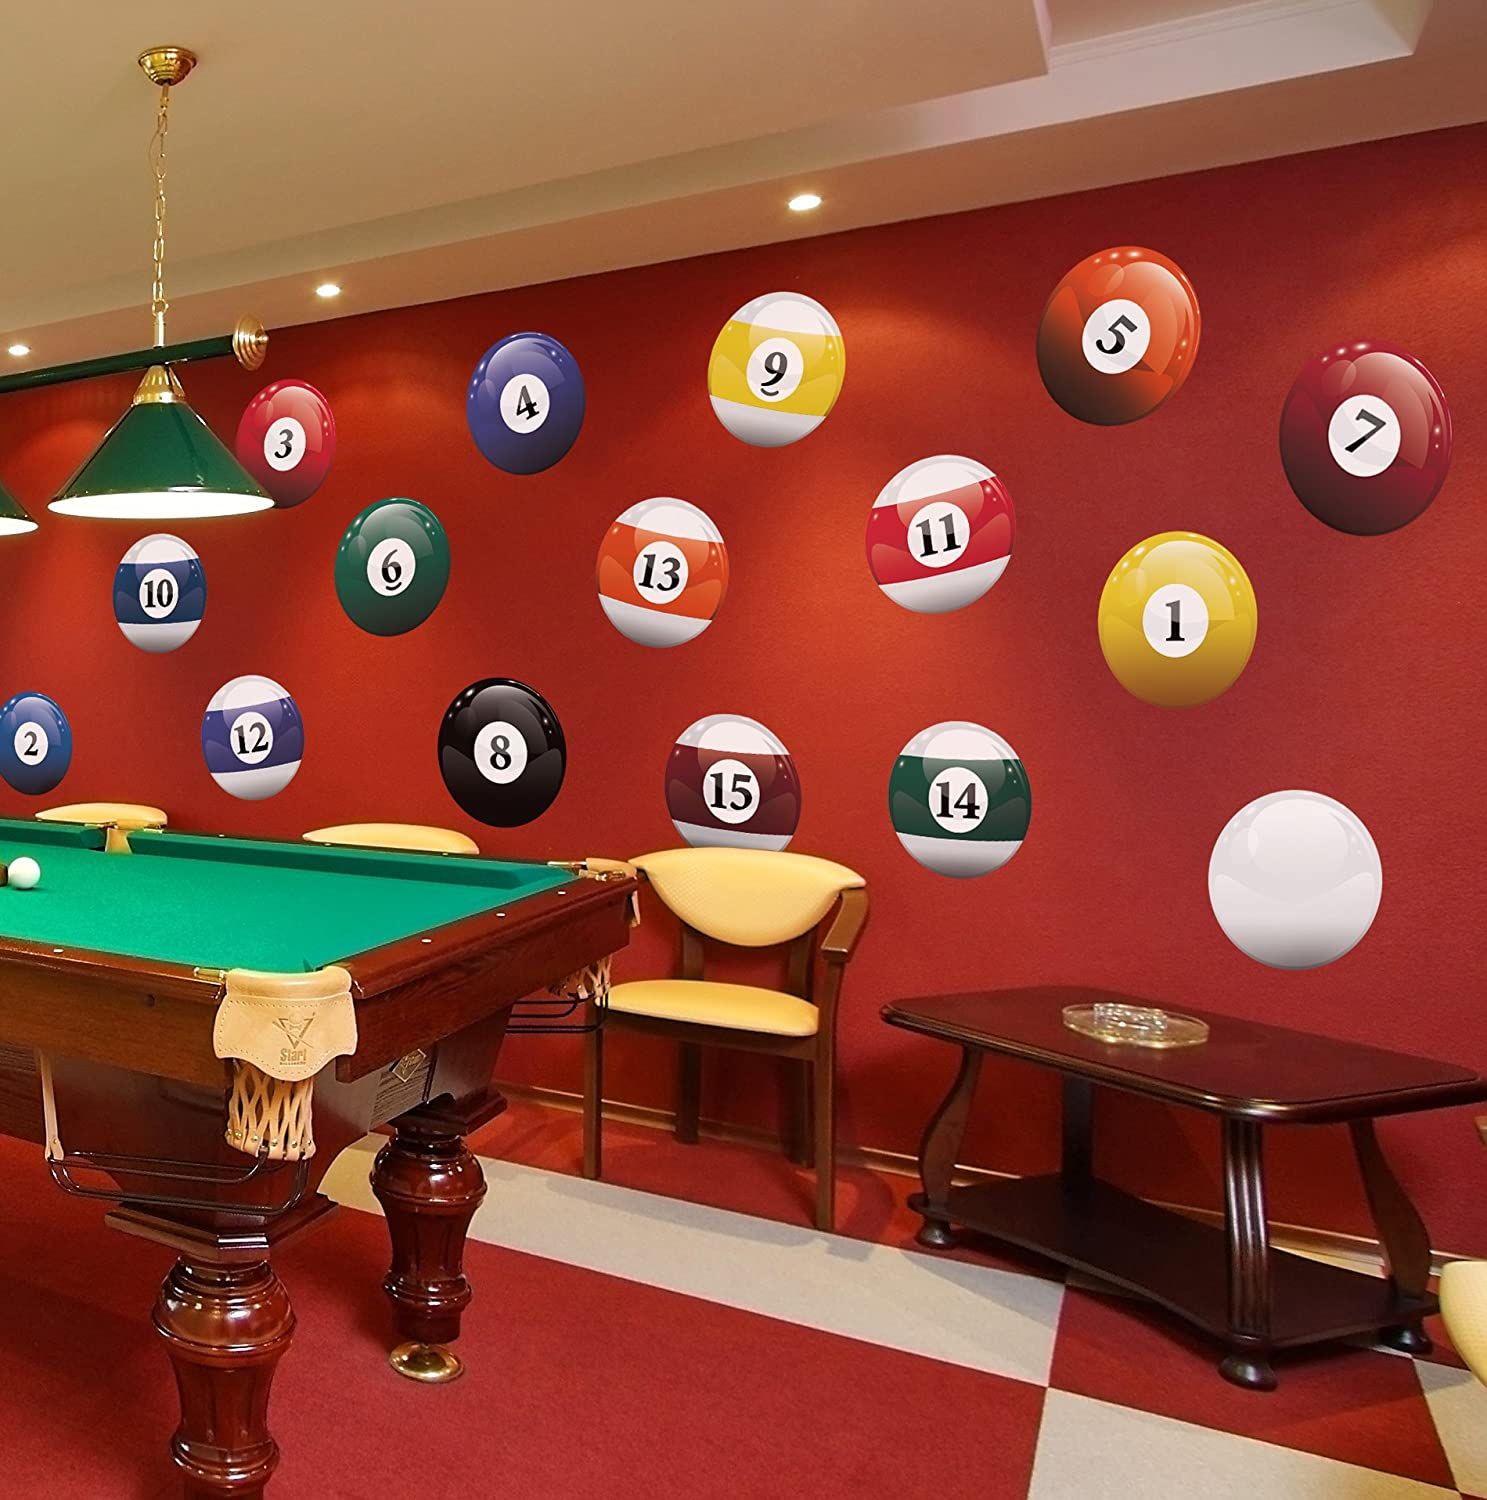 Amazon Com 16 Realistic Color Billiard Balls Wall Decal Sticker Game Room Sign Decor 15in X 15in Size 6089 Easy To Apply Removable Arts Crafts Sewing